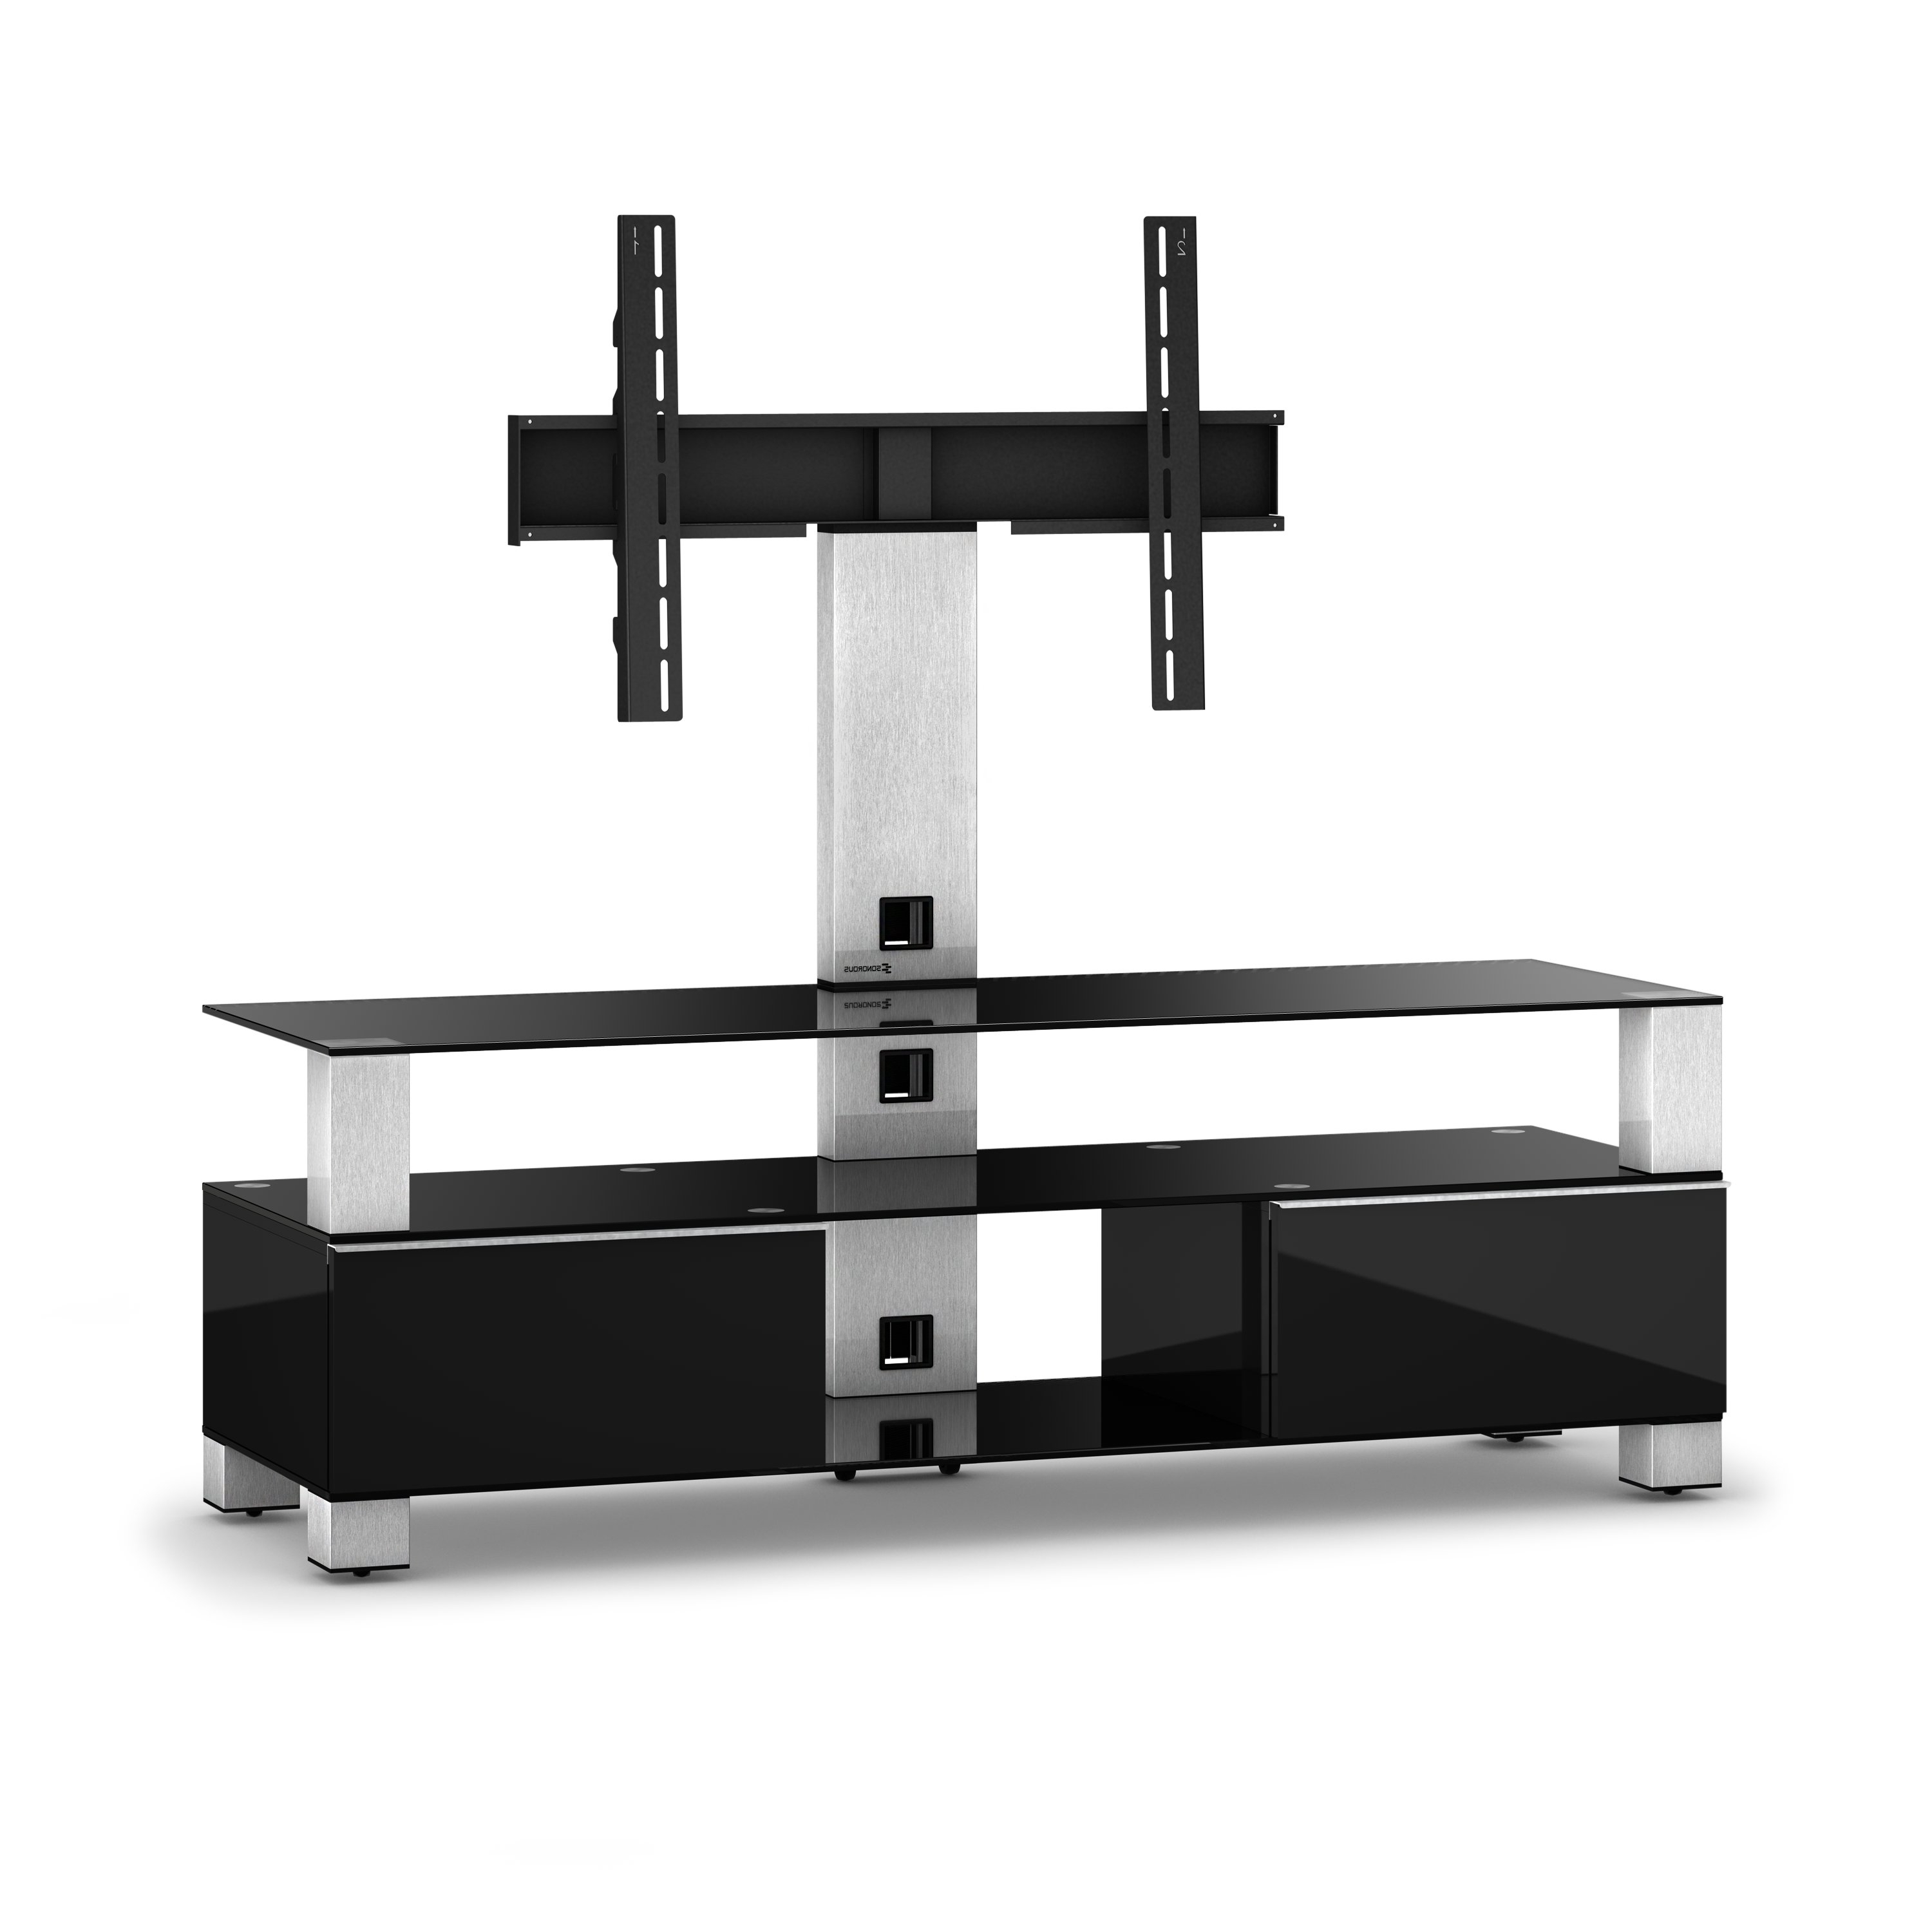 2017 Cheap Cantilever Tv Stands Within Connected Essentials Ltd Cantilever Tv Stand For Tvs Up To 60 (Gallery 5 of 20)